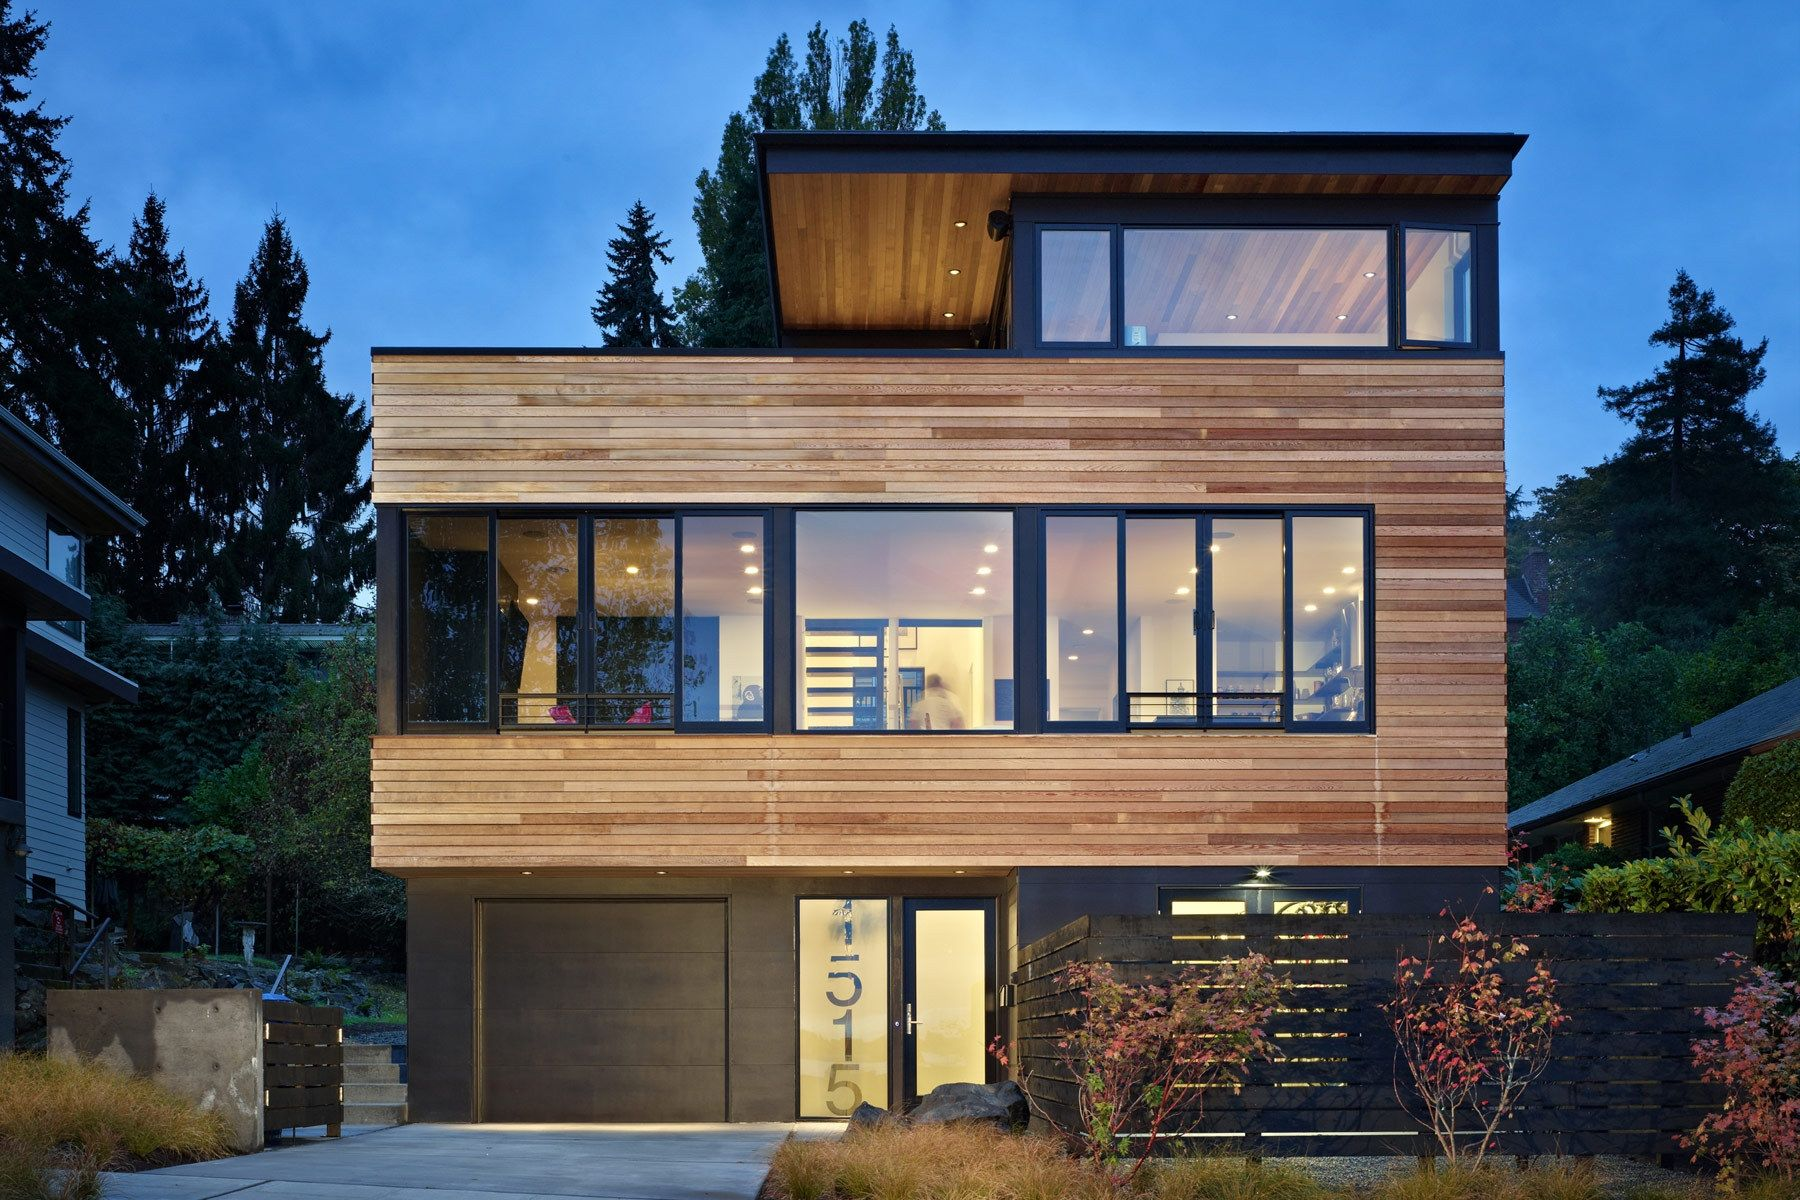 Architecture modern seattle home ranch house designs for Modern container home designs